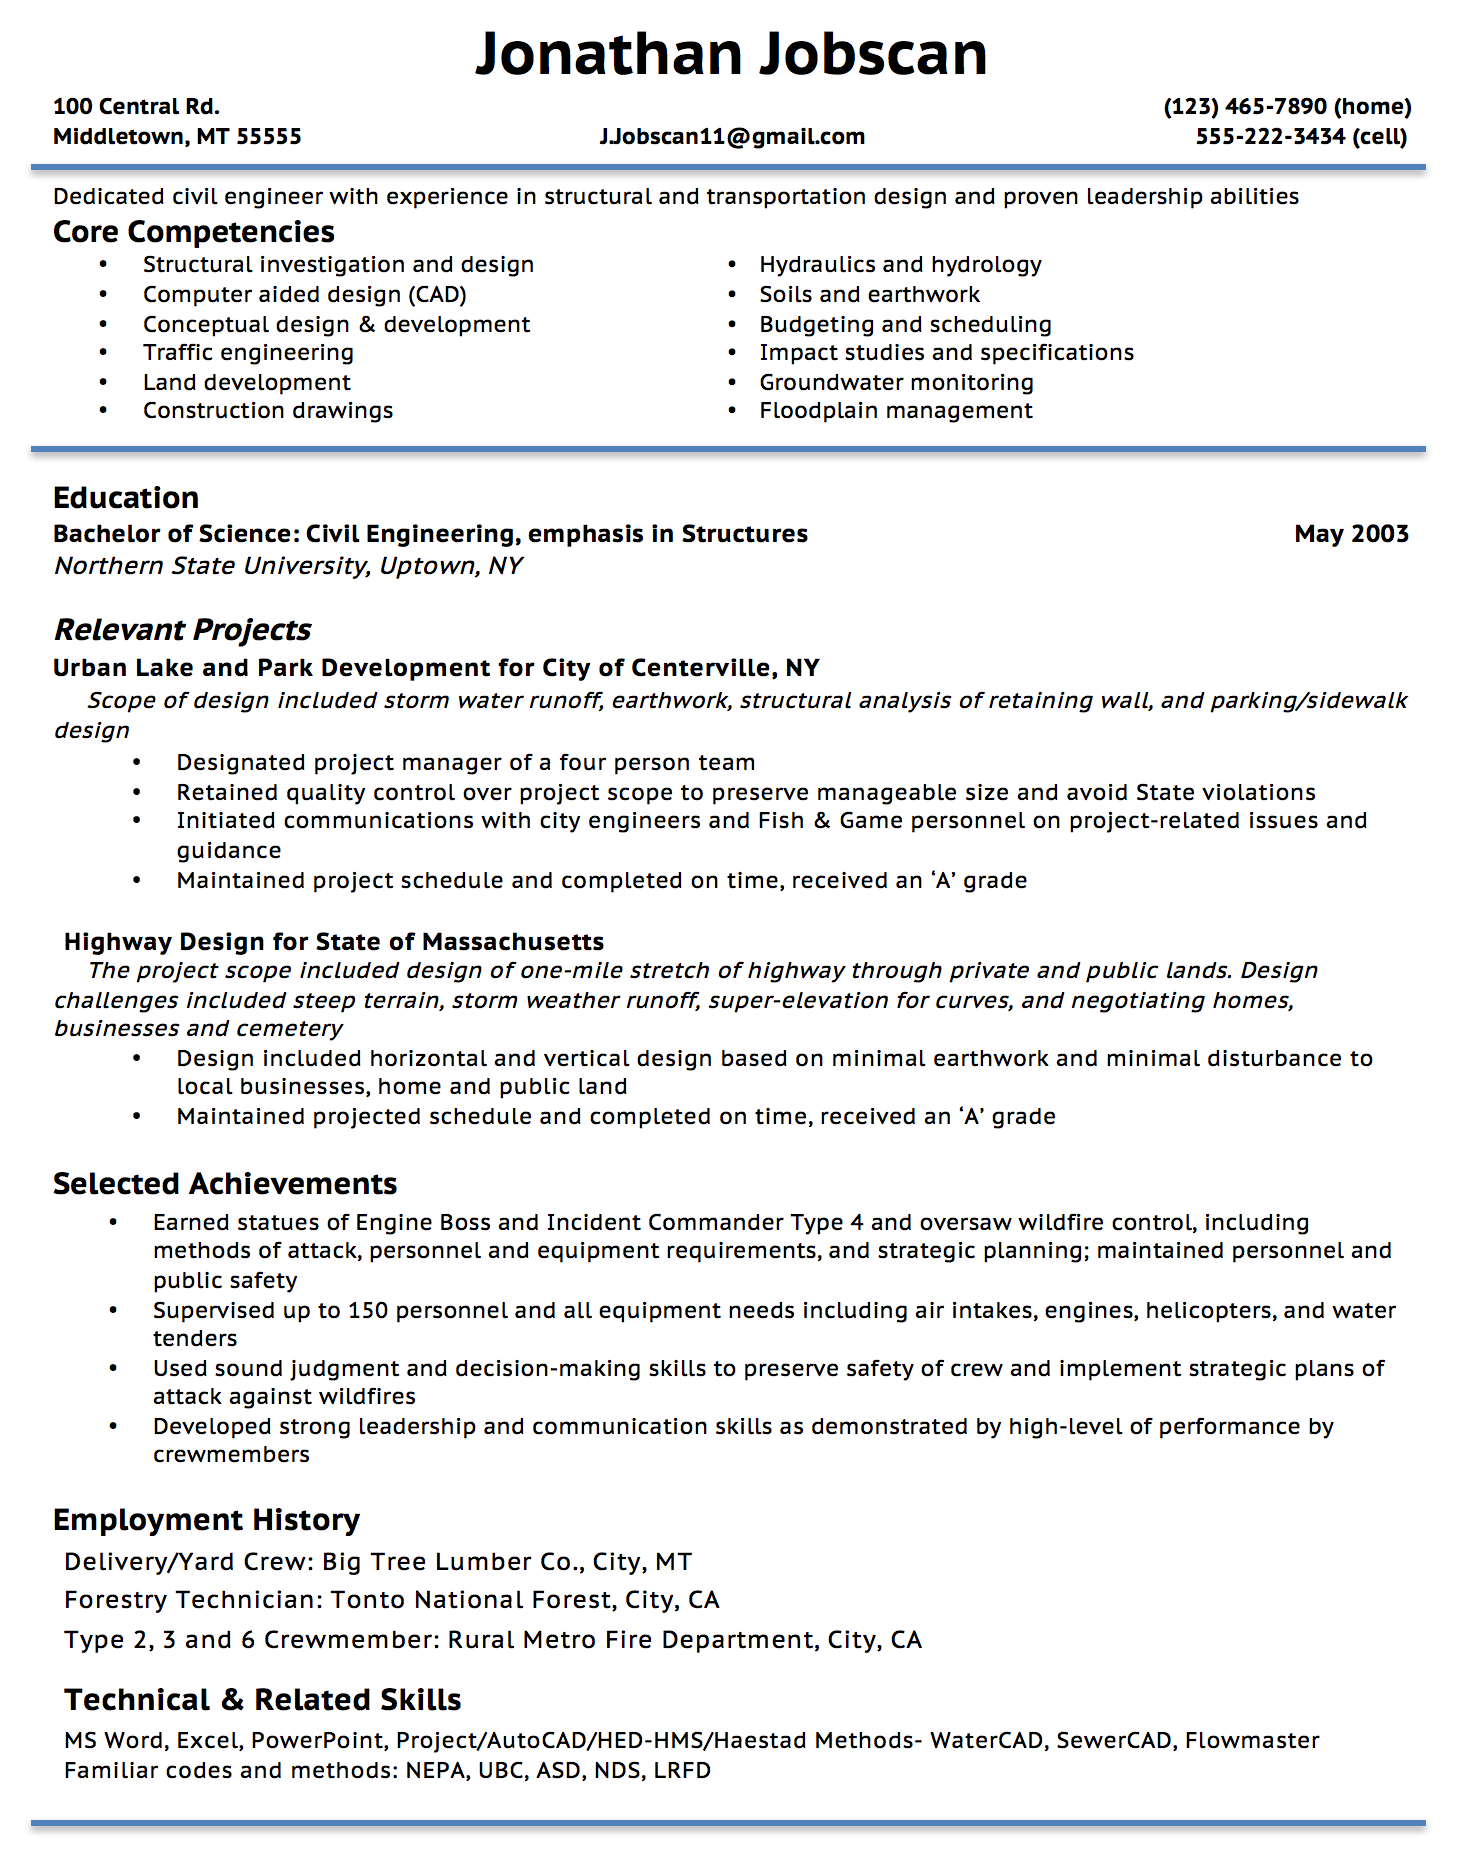 Opposenewapstandardsus  Outstanding Resume Writing Guide  Jobscan With Foxy Example Of A Functional Resume Format With Enchanting School Bus Driver Resume Also Math Tutor Resume In Addition Electronic Technician Resume And Create Online Resume As Well As Professional Summary Examples For Resume Additionally Ultrasound Resume From Jobscanco With Opposenewapstandardsus  Foxy Resume Writing Guide  Jobscan With Enchanting Example Of A Functional Resume Format And Outstanding School Bus Driver Resume Also Math Tutor Resume In Addition Electronic Technician Resume From Jobscanco